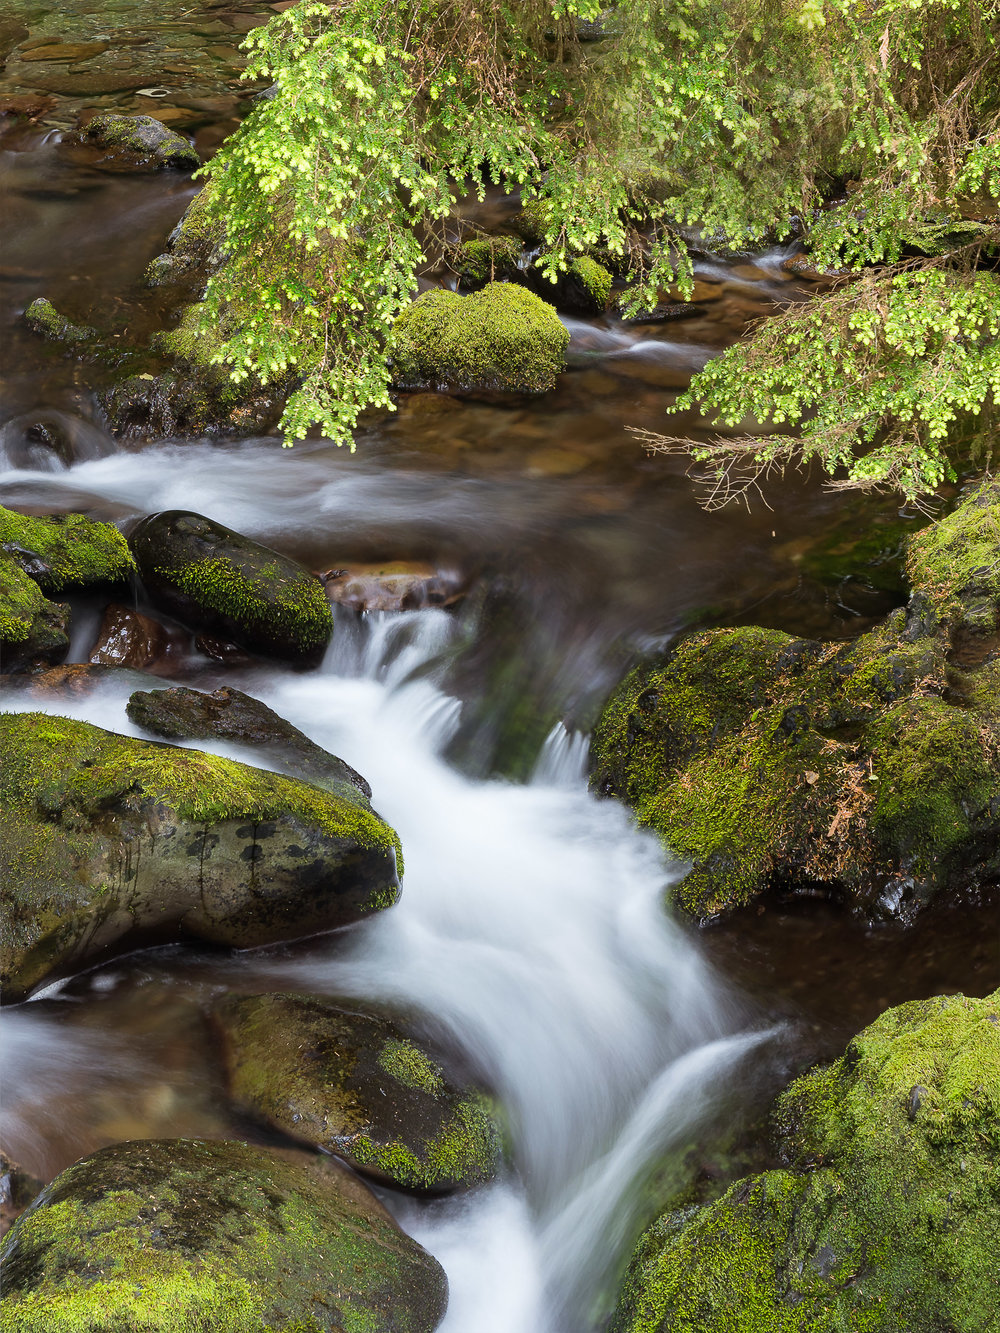 Perfect Stream - Olympic National Park ©John Guillaume   1/60 sec, f7.1, ISO 64 - Shot on a tripod